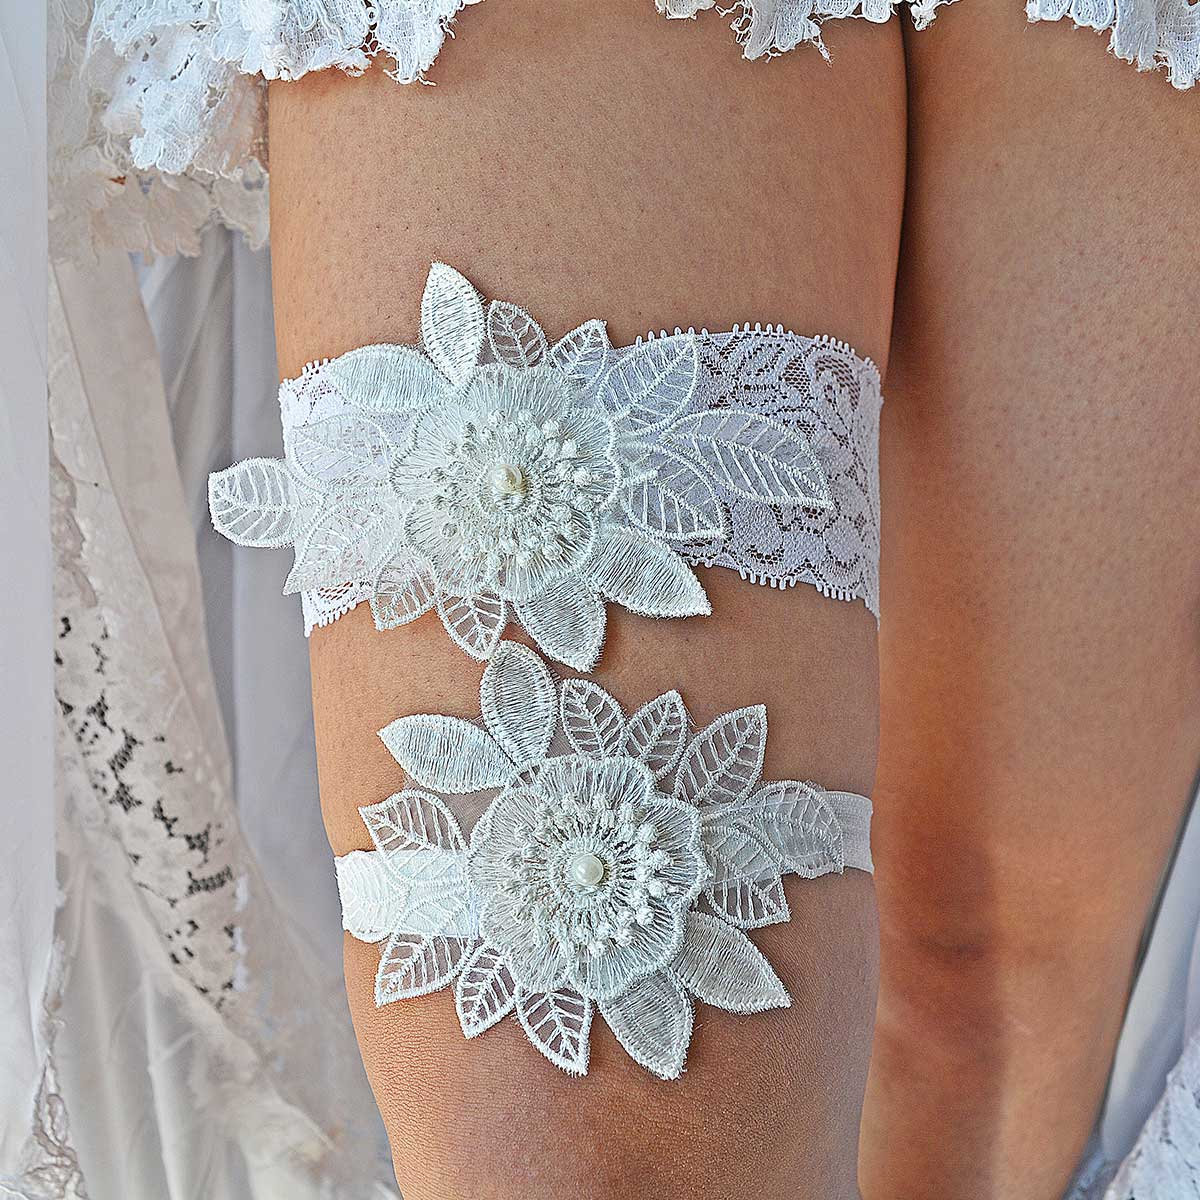 All White Bridal Garter With White 3D Lace Flower & Pearls - Wedding Garter - SuzannaM Designs